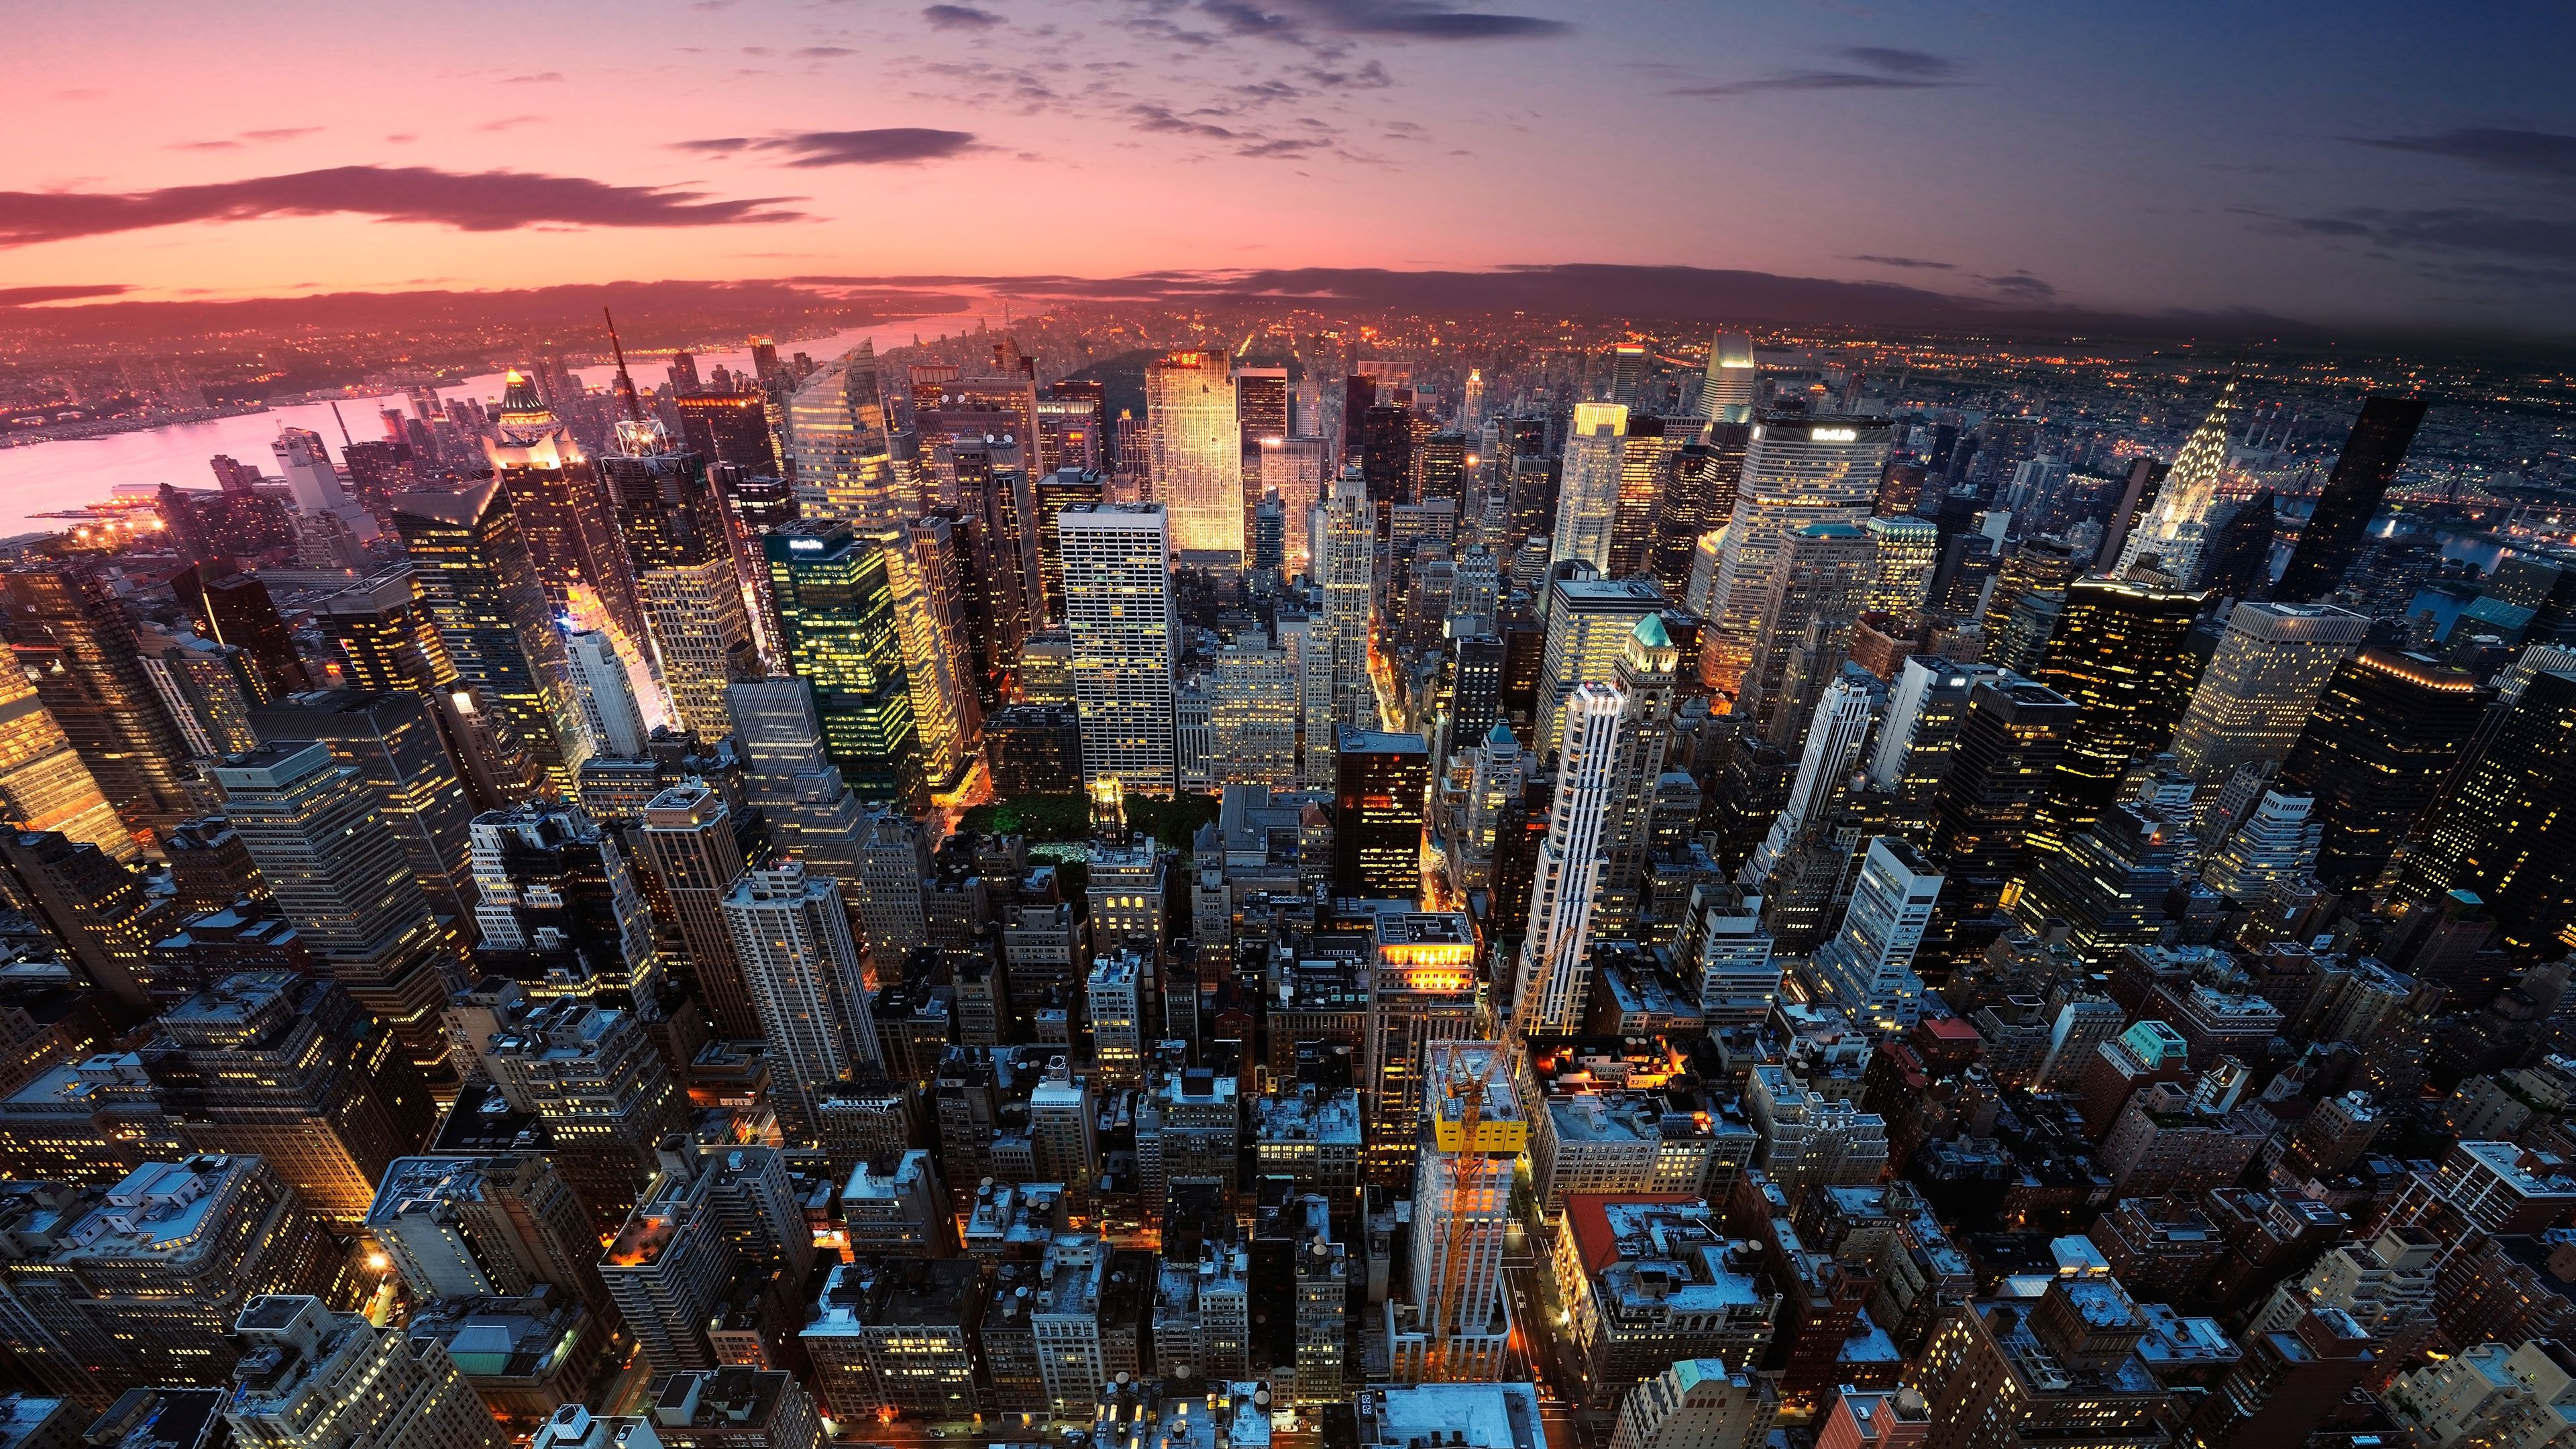 New York 4k Wallpapers Top Free New York 4k Backgrounds